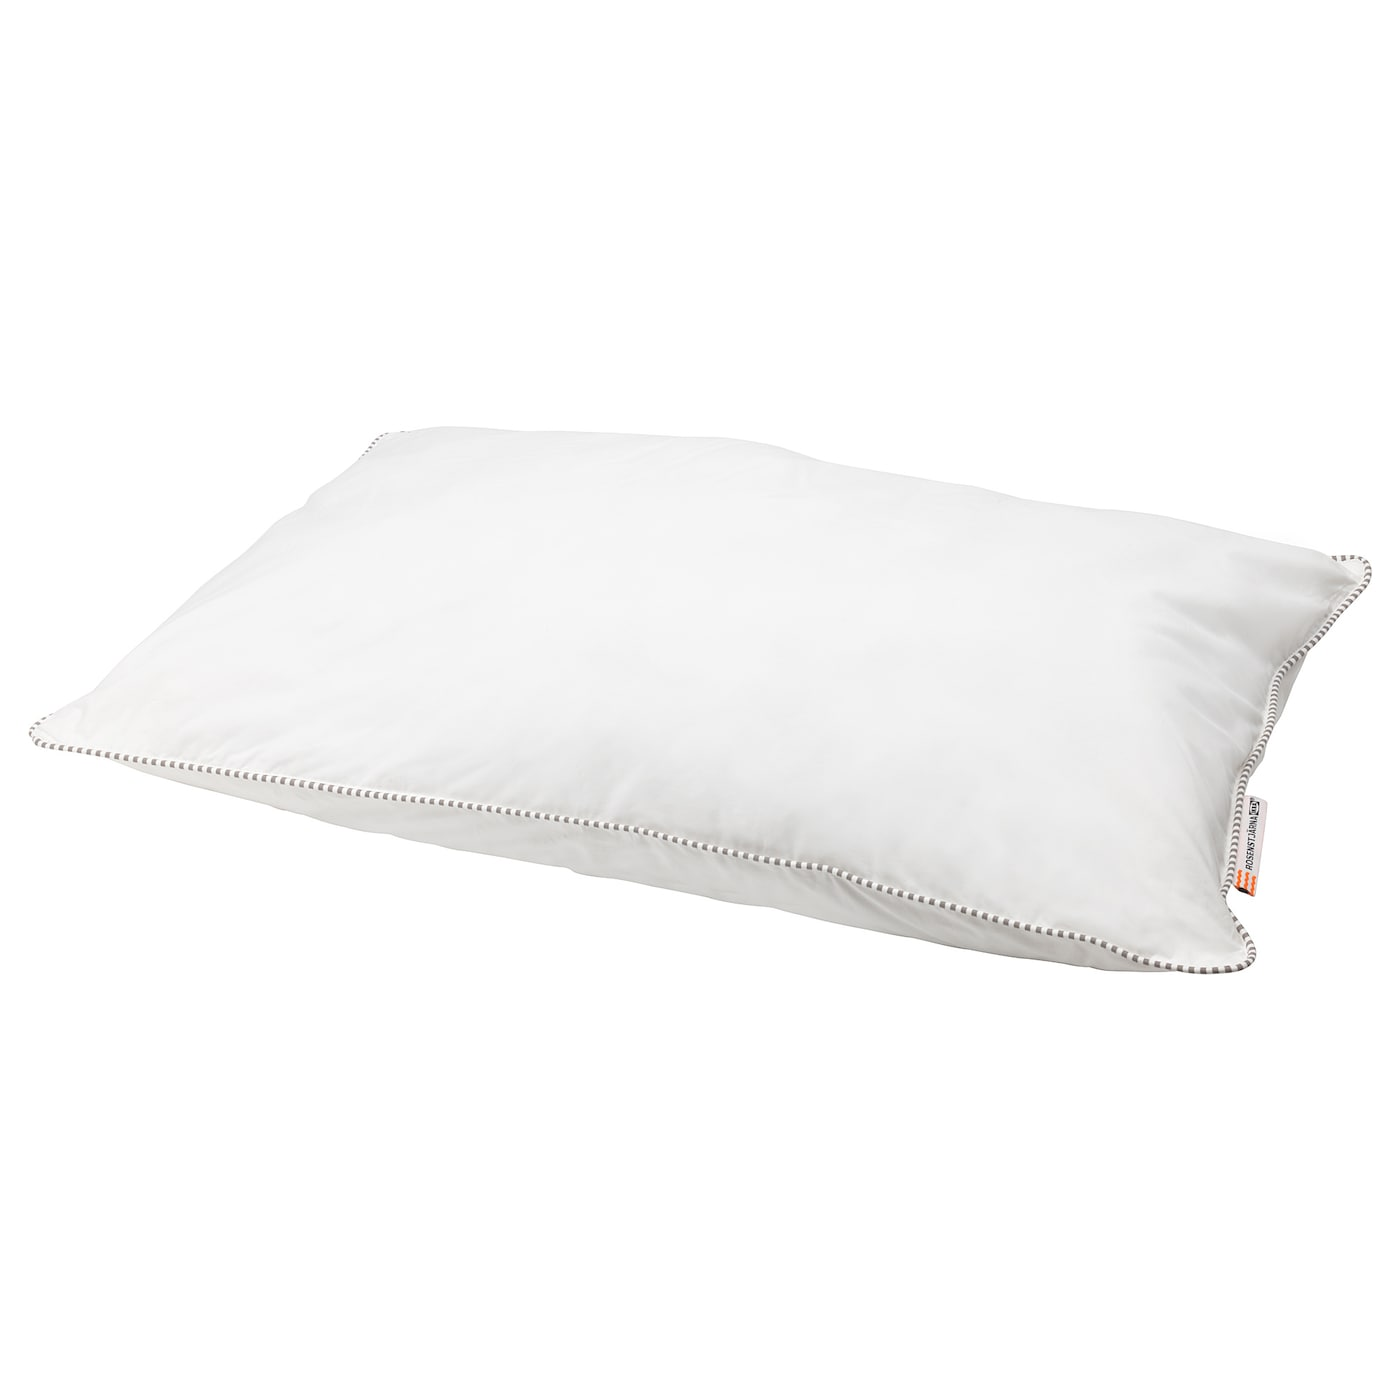 IKEA ROSENSTJÄRNA pillow, softer